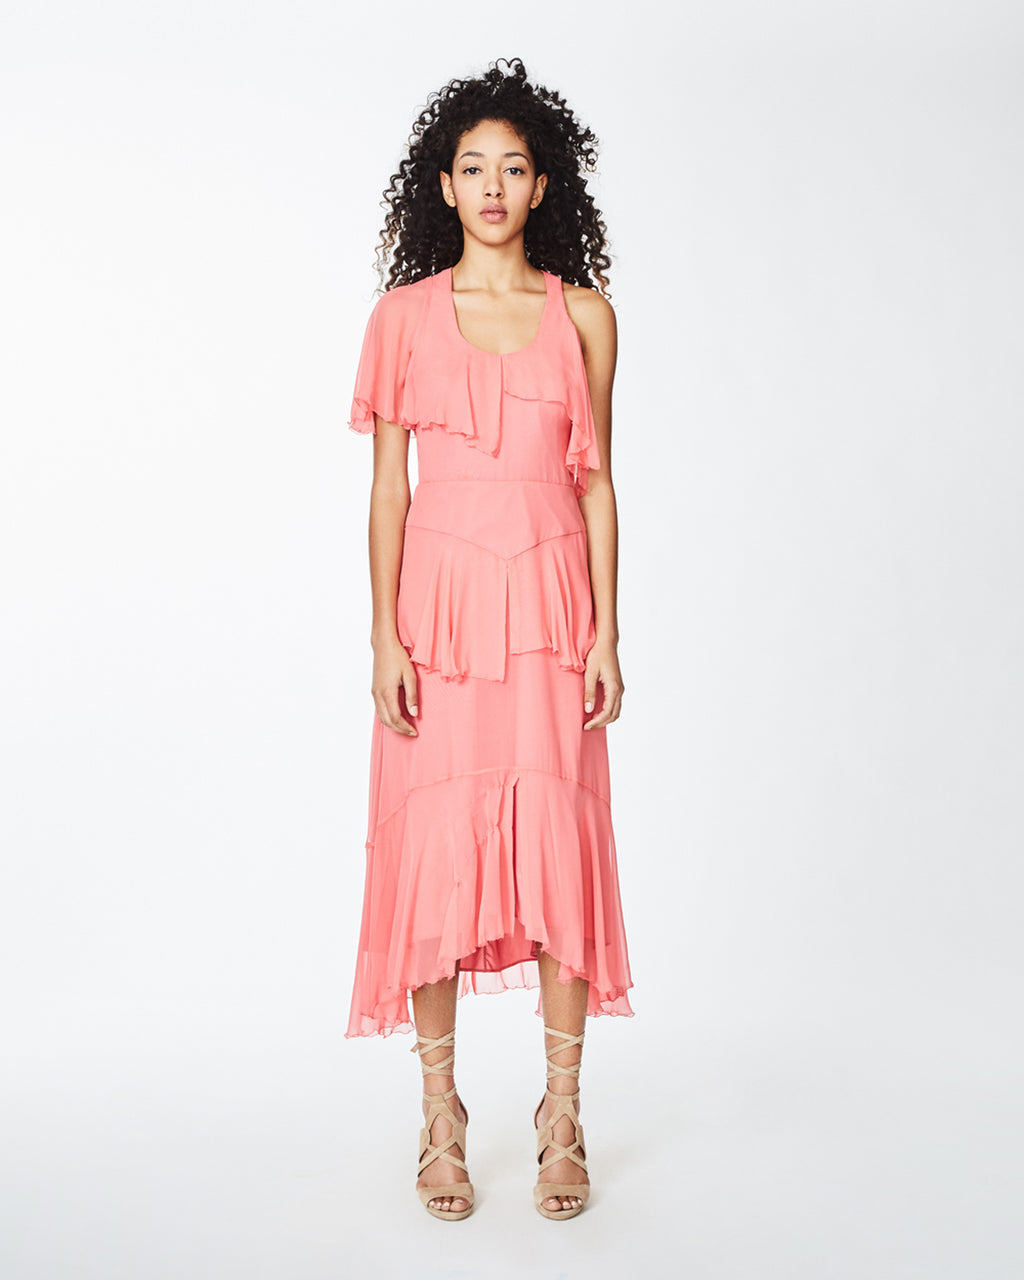 CE10115 - one shoulder asymmetrical dress - dresses - midi - Ruffles everywhere, please. In a darling coral hue, this mini dress has ruffled tiers throughuot the body and moves into a high-low hemline. Concealed zipper for closure. Final Sale